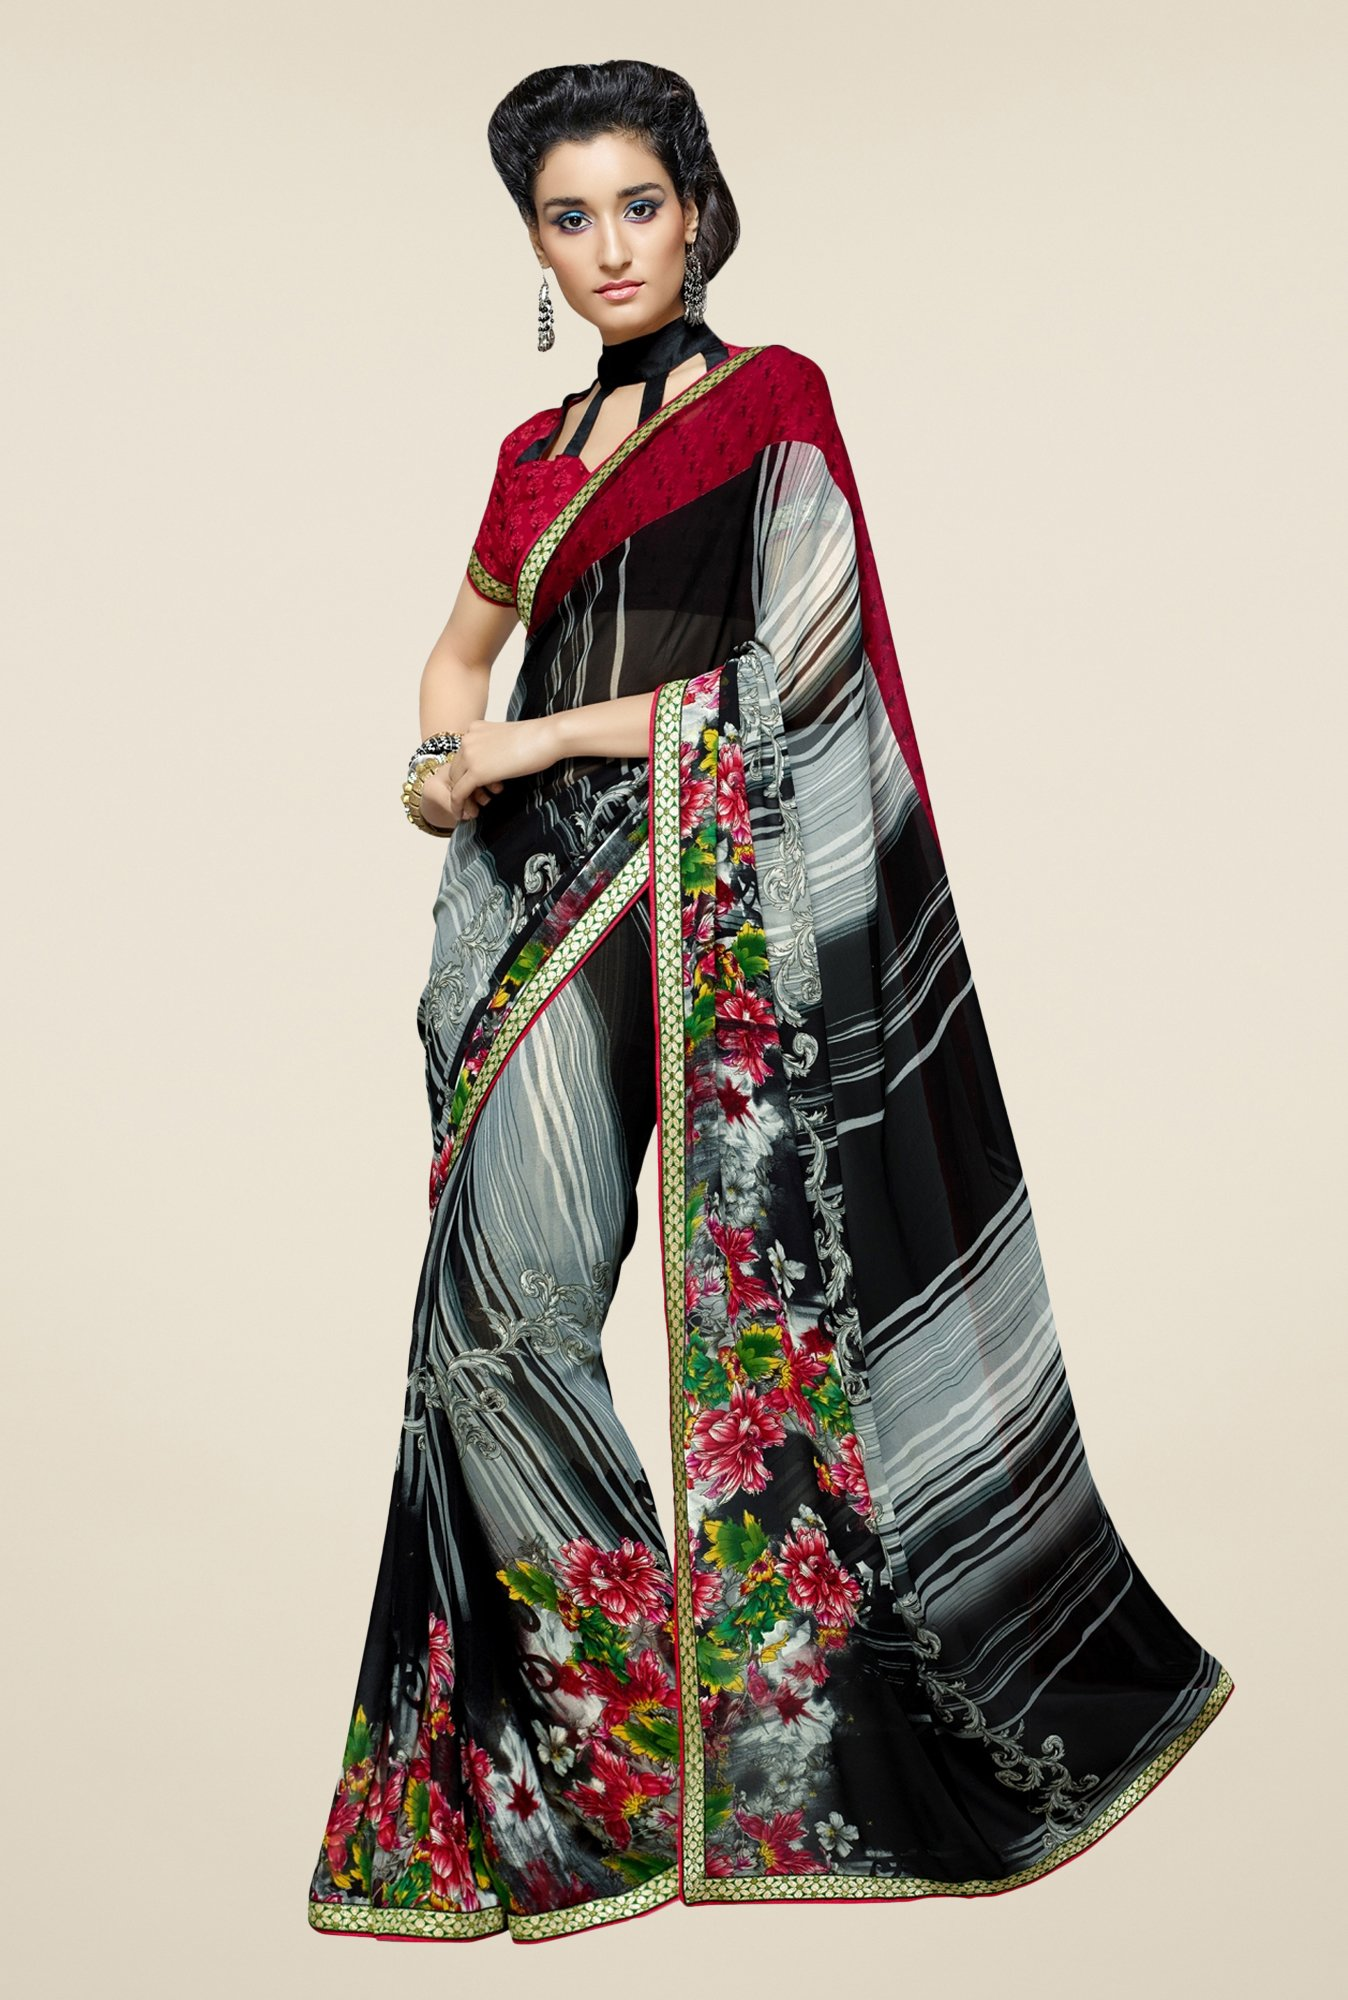 Triveni Black & Grey Floral Print Faux Georgette Saree